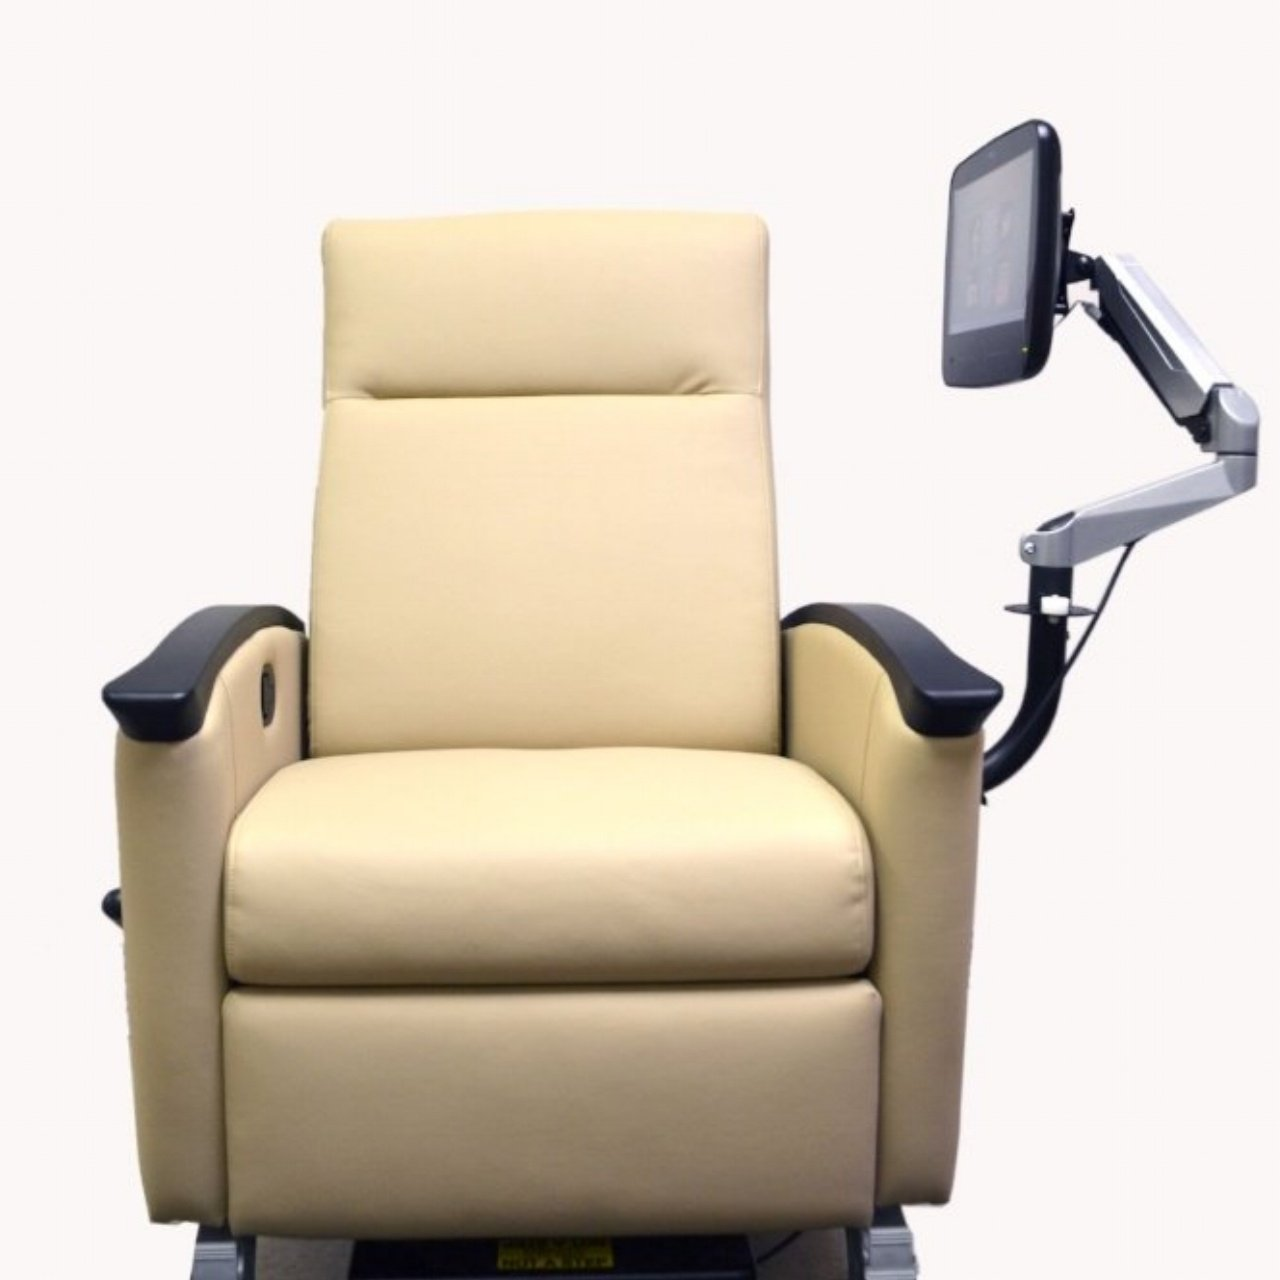 La-Z-Boy PDi Chair Mount-386220-edited-790178-edited